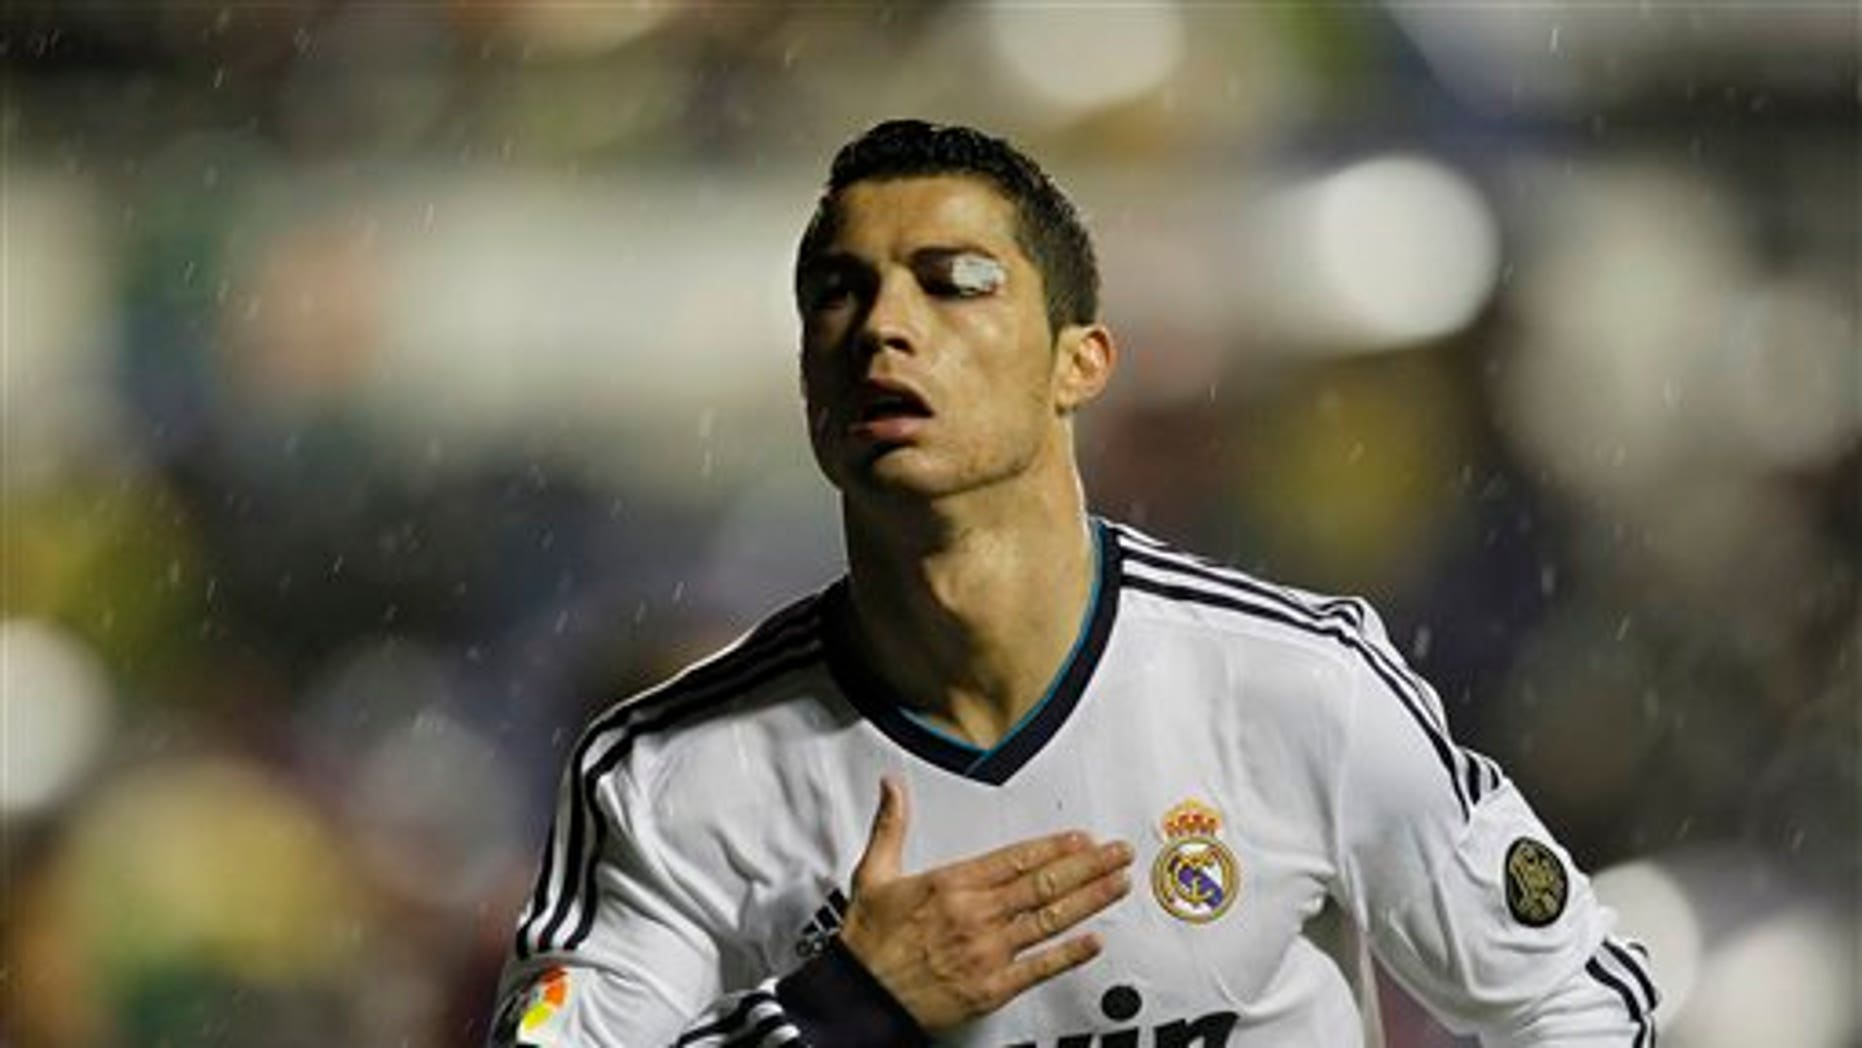 Cristiano Ronaldo's left eye was cut by David Navarro during Real Madrid's match against Levante on Nov. 11, 2012.  (AP Photo/ Fernando Hernández)